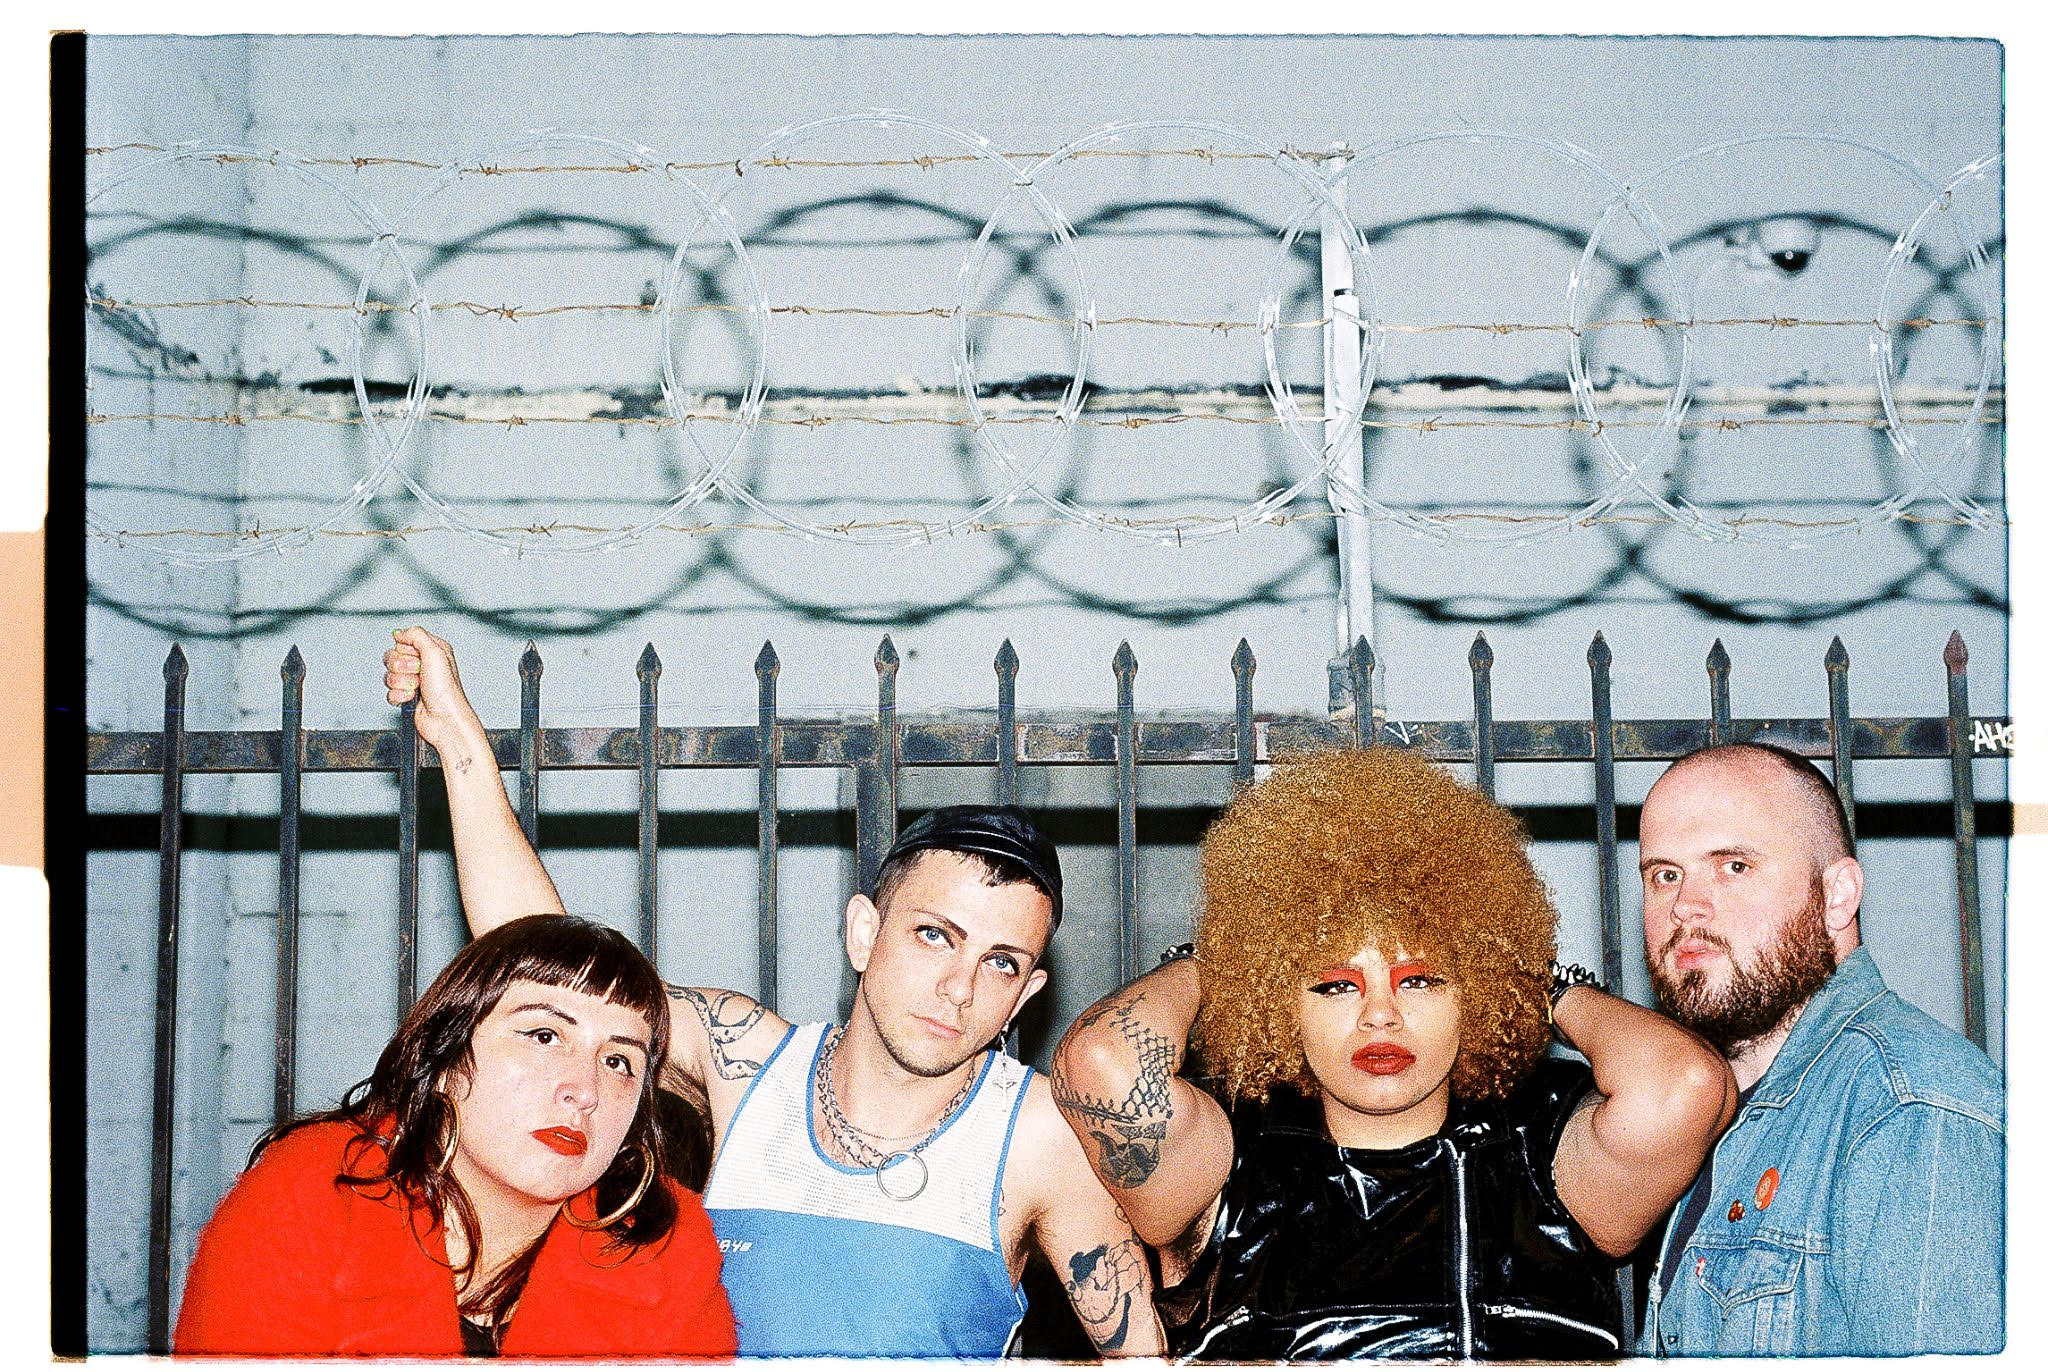 Special Interest Sign With Rough Trade, Share 'Street Pulse Beat'